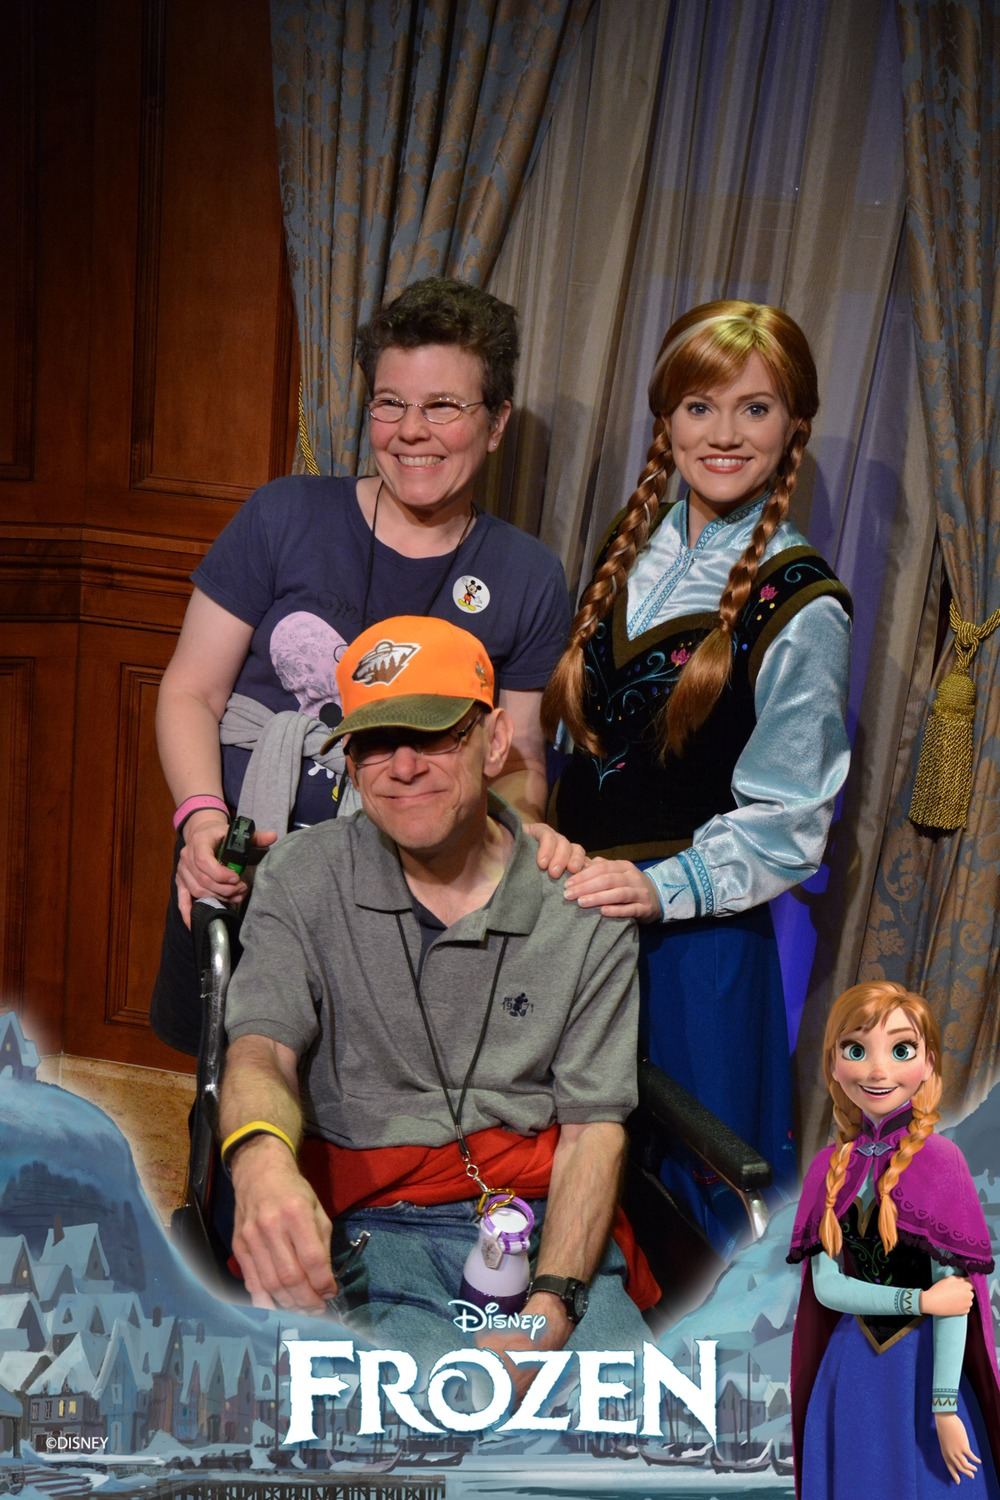 PhotoPass_Visiting_Magic_Kingdom_Park_7091573412.jpg